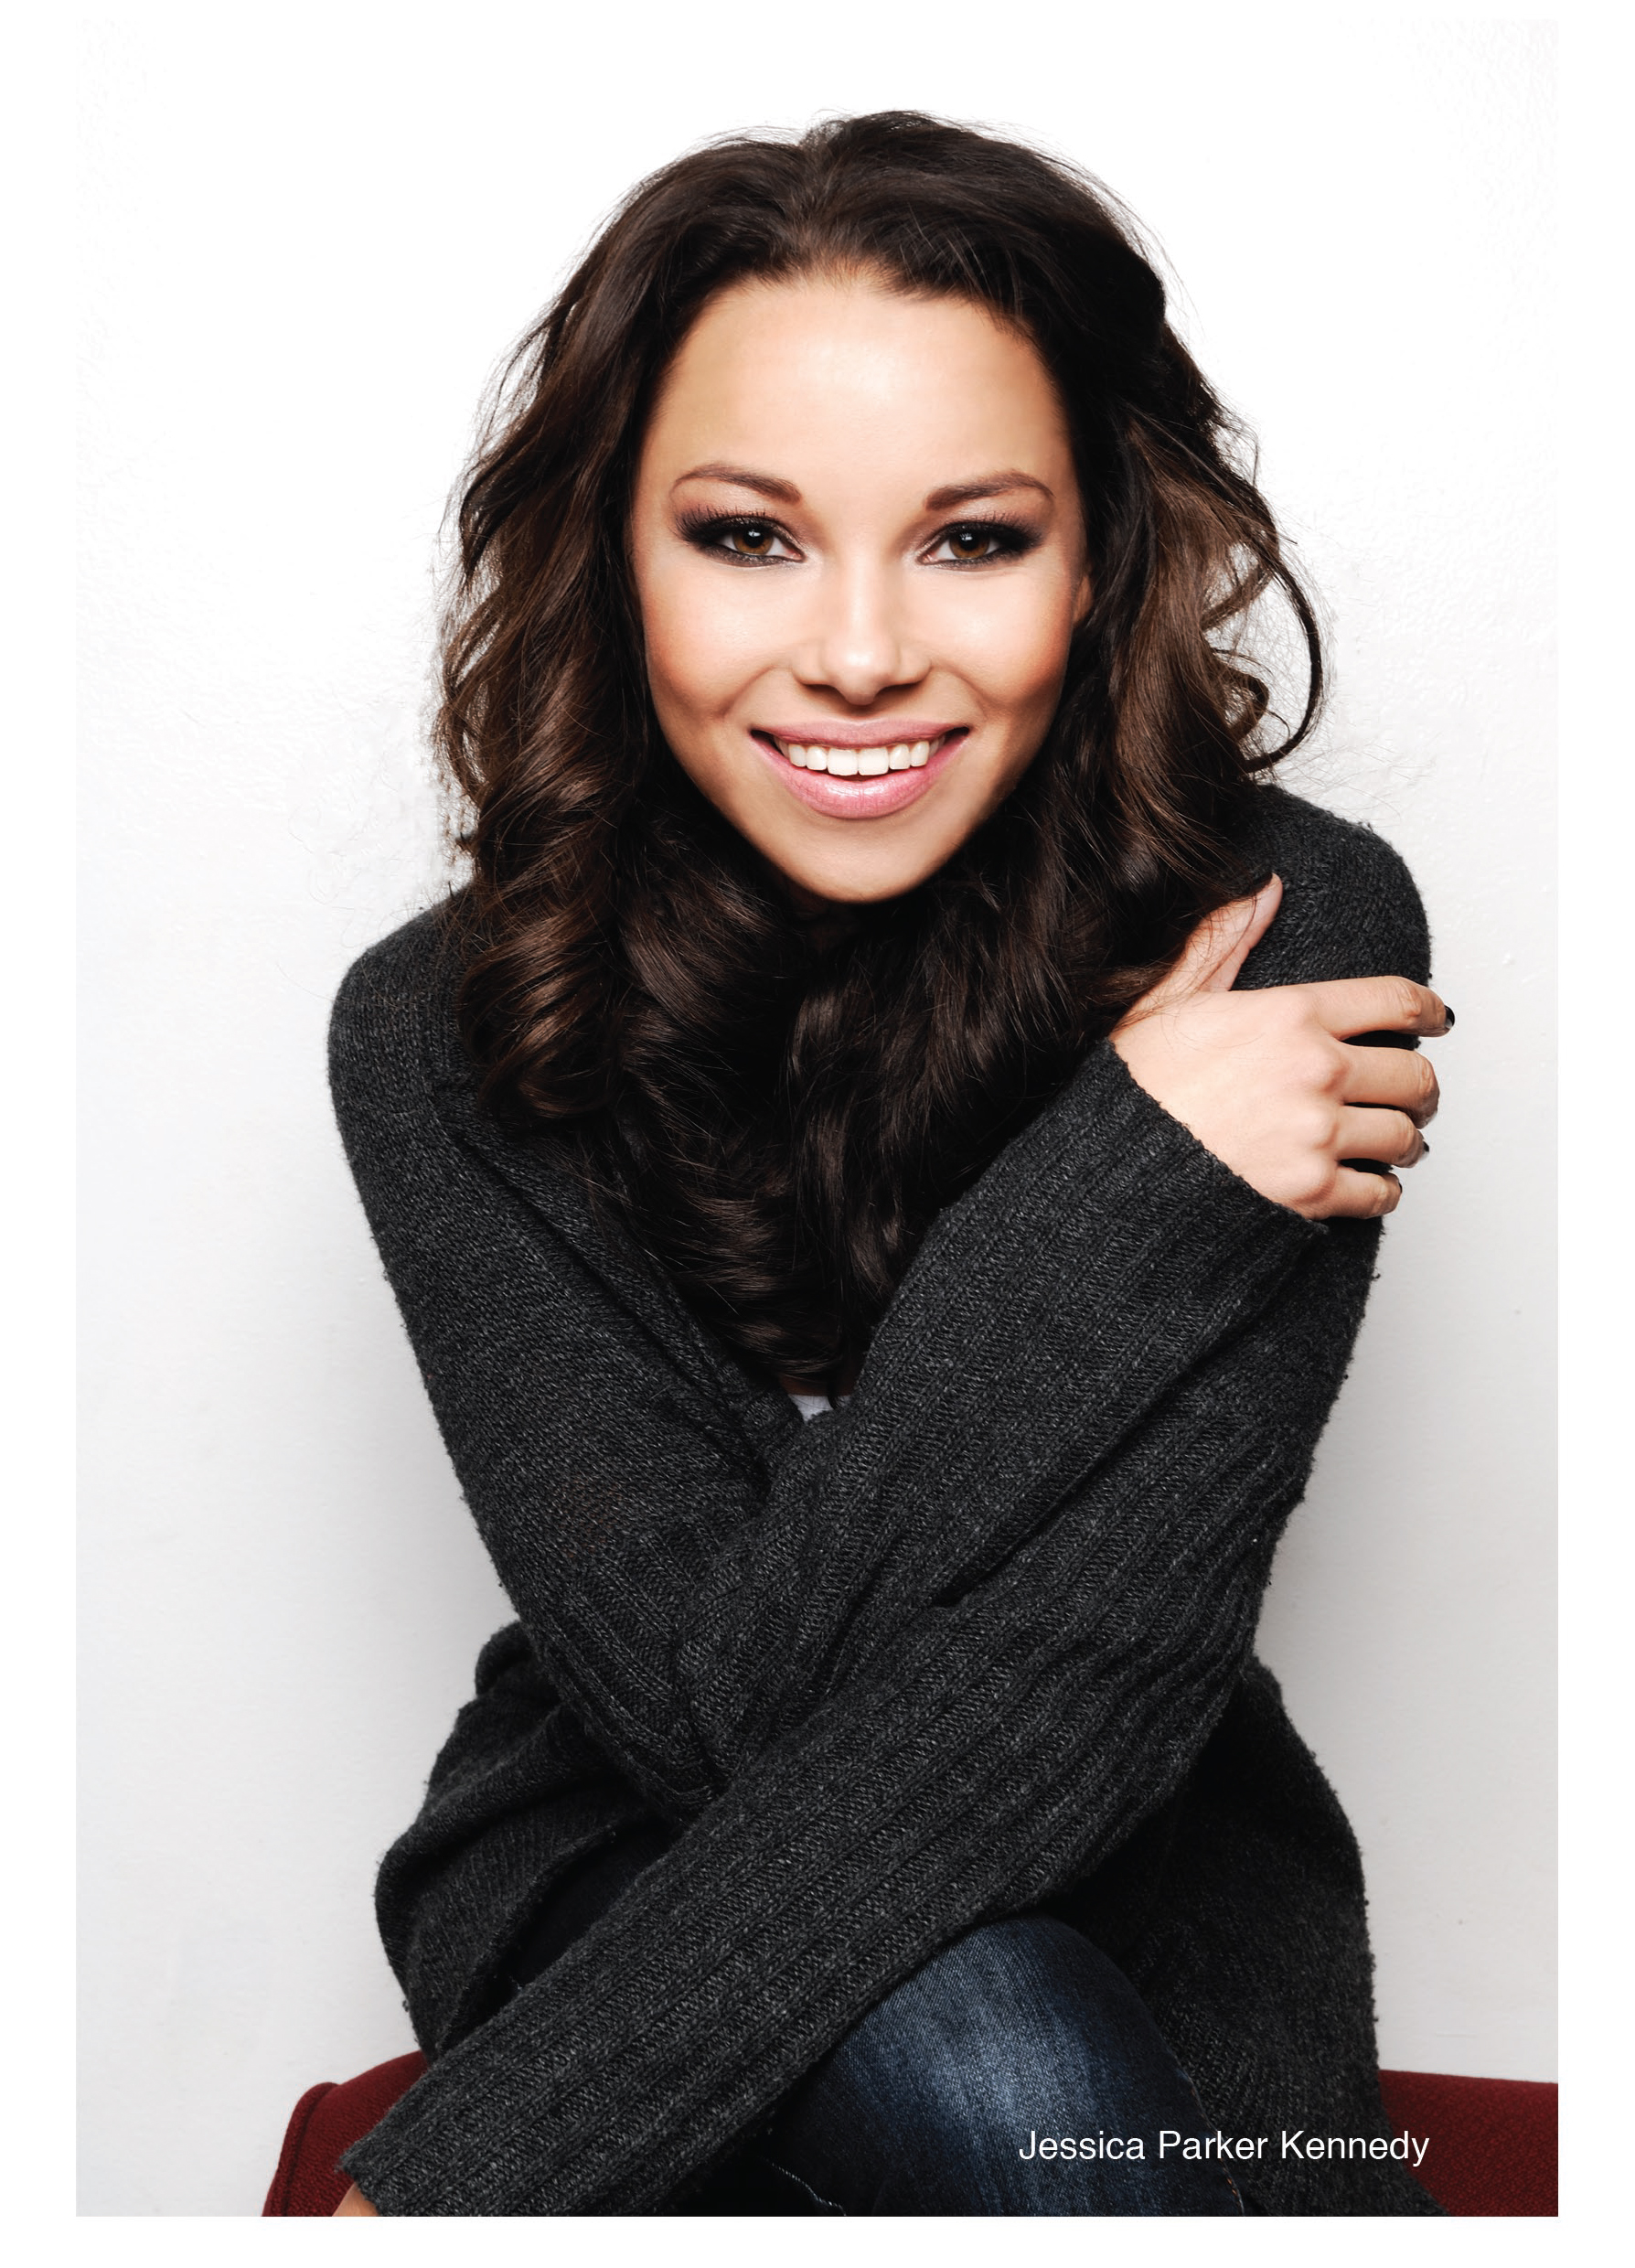 Jessica Parker Kennedy for RegardMag.com.jpg